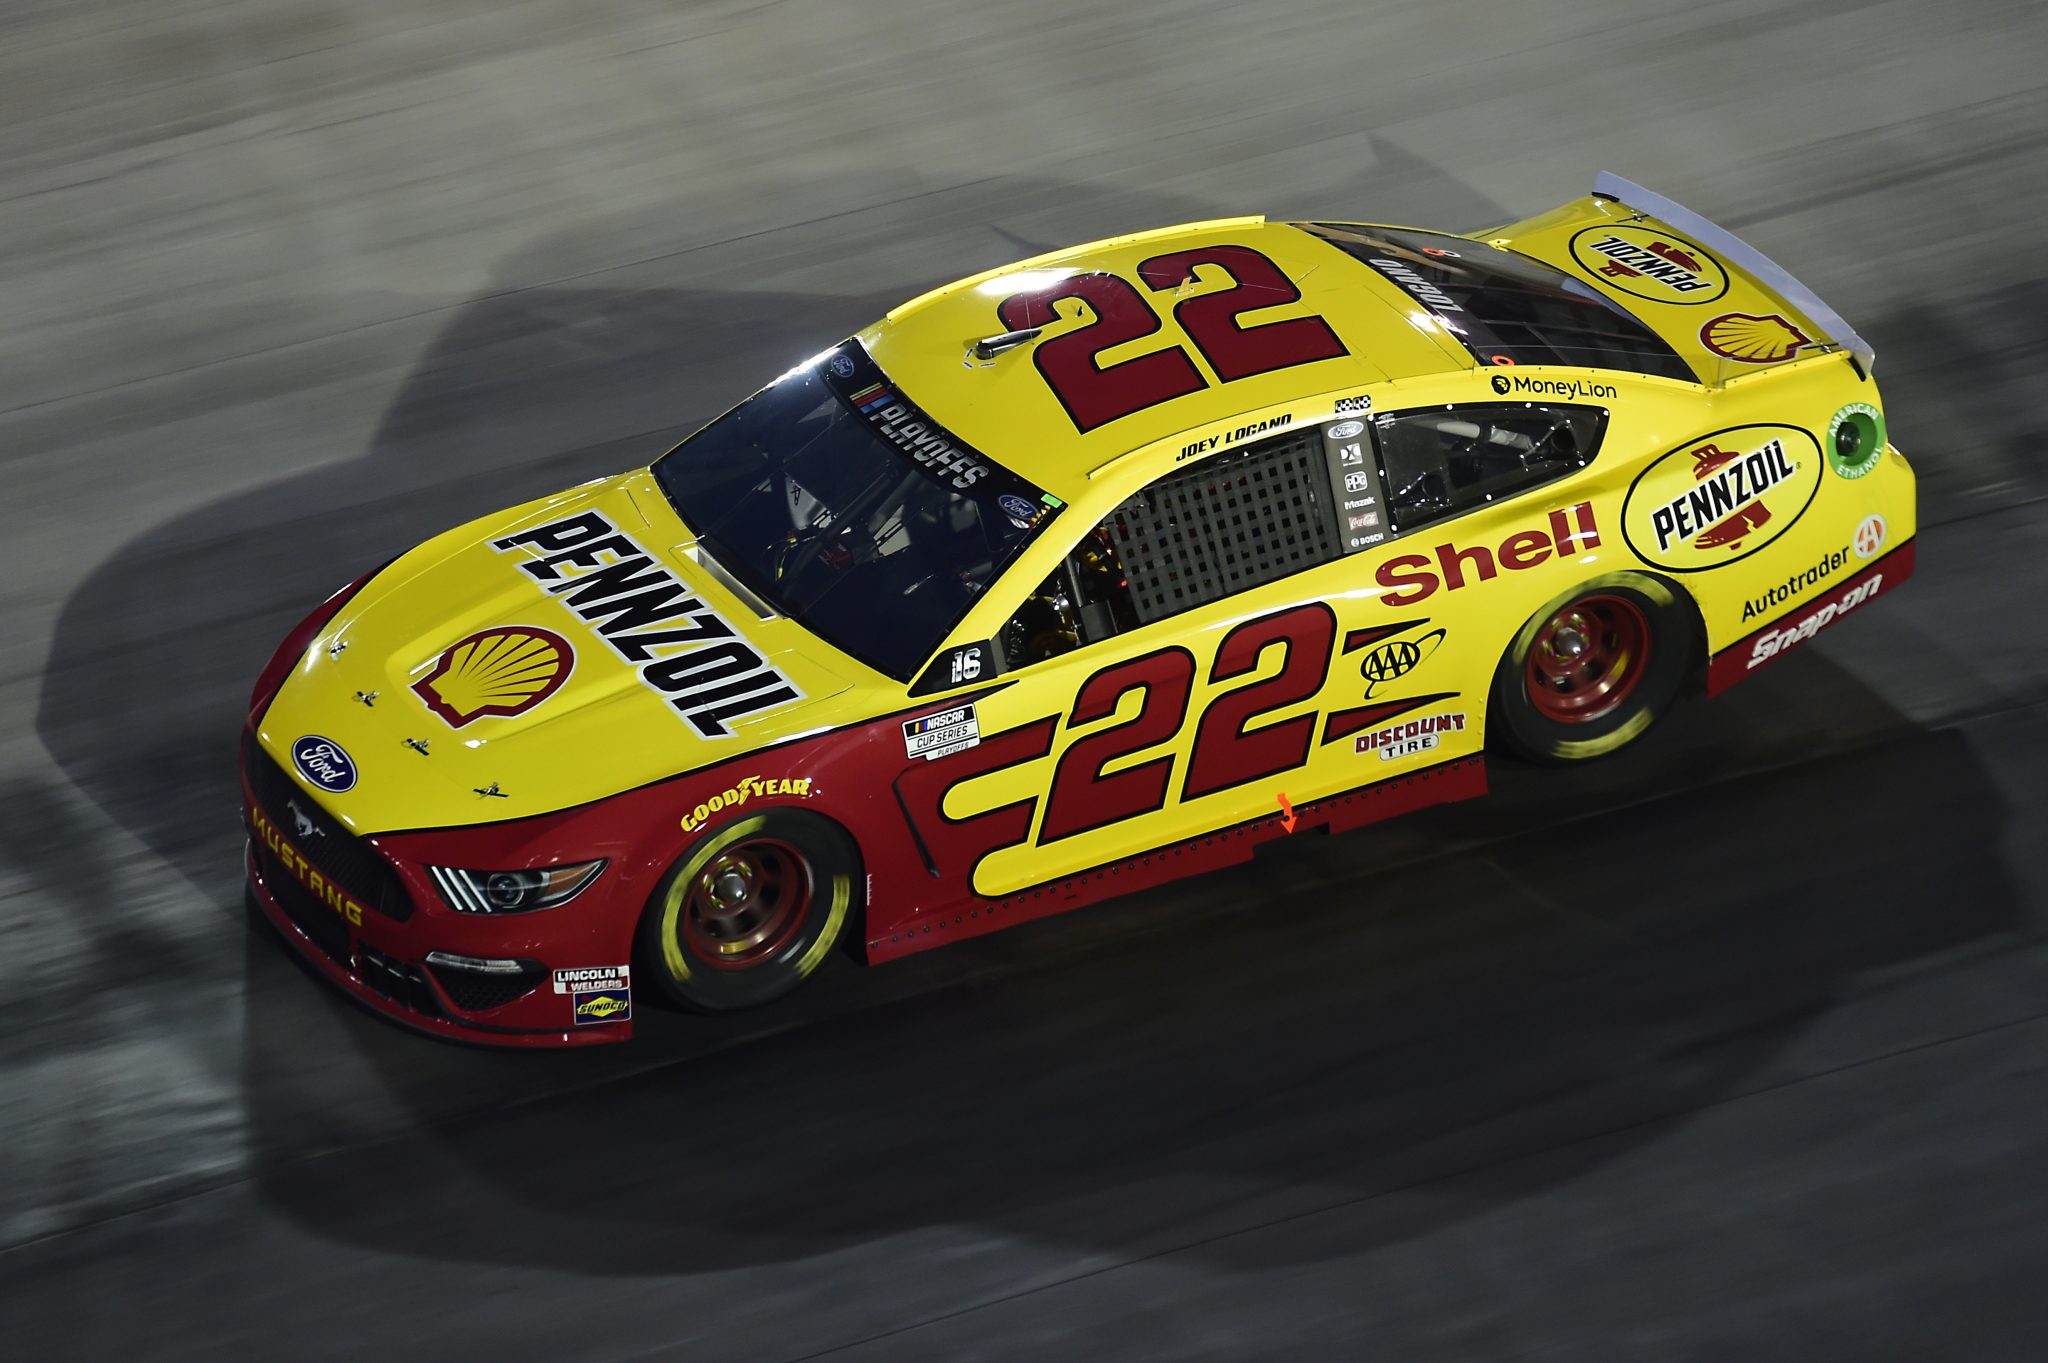 BRISTOL, TENNESSEE - SEPTEMBER 19: Joey Logano, driver of the #22 Shell Pennzoil Ford, drives during the NASCAR Cup Series Bass Pro Shops Night Race at Bristol Motor Speedway on September 19, 2020 in Bristol, Tennessee. (Photo by Jared C. Tilton/Getty Images) | Getty Images